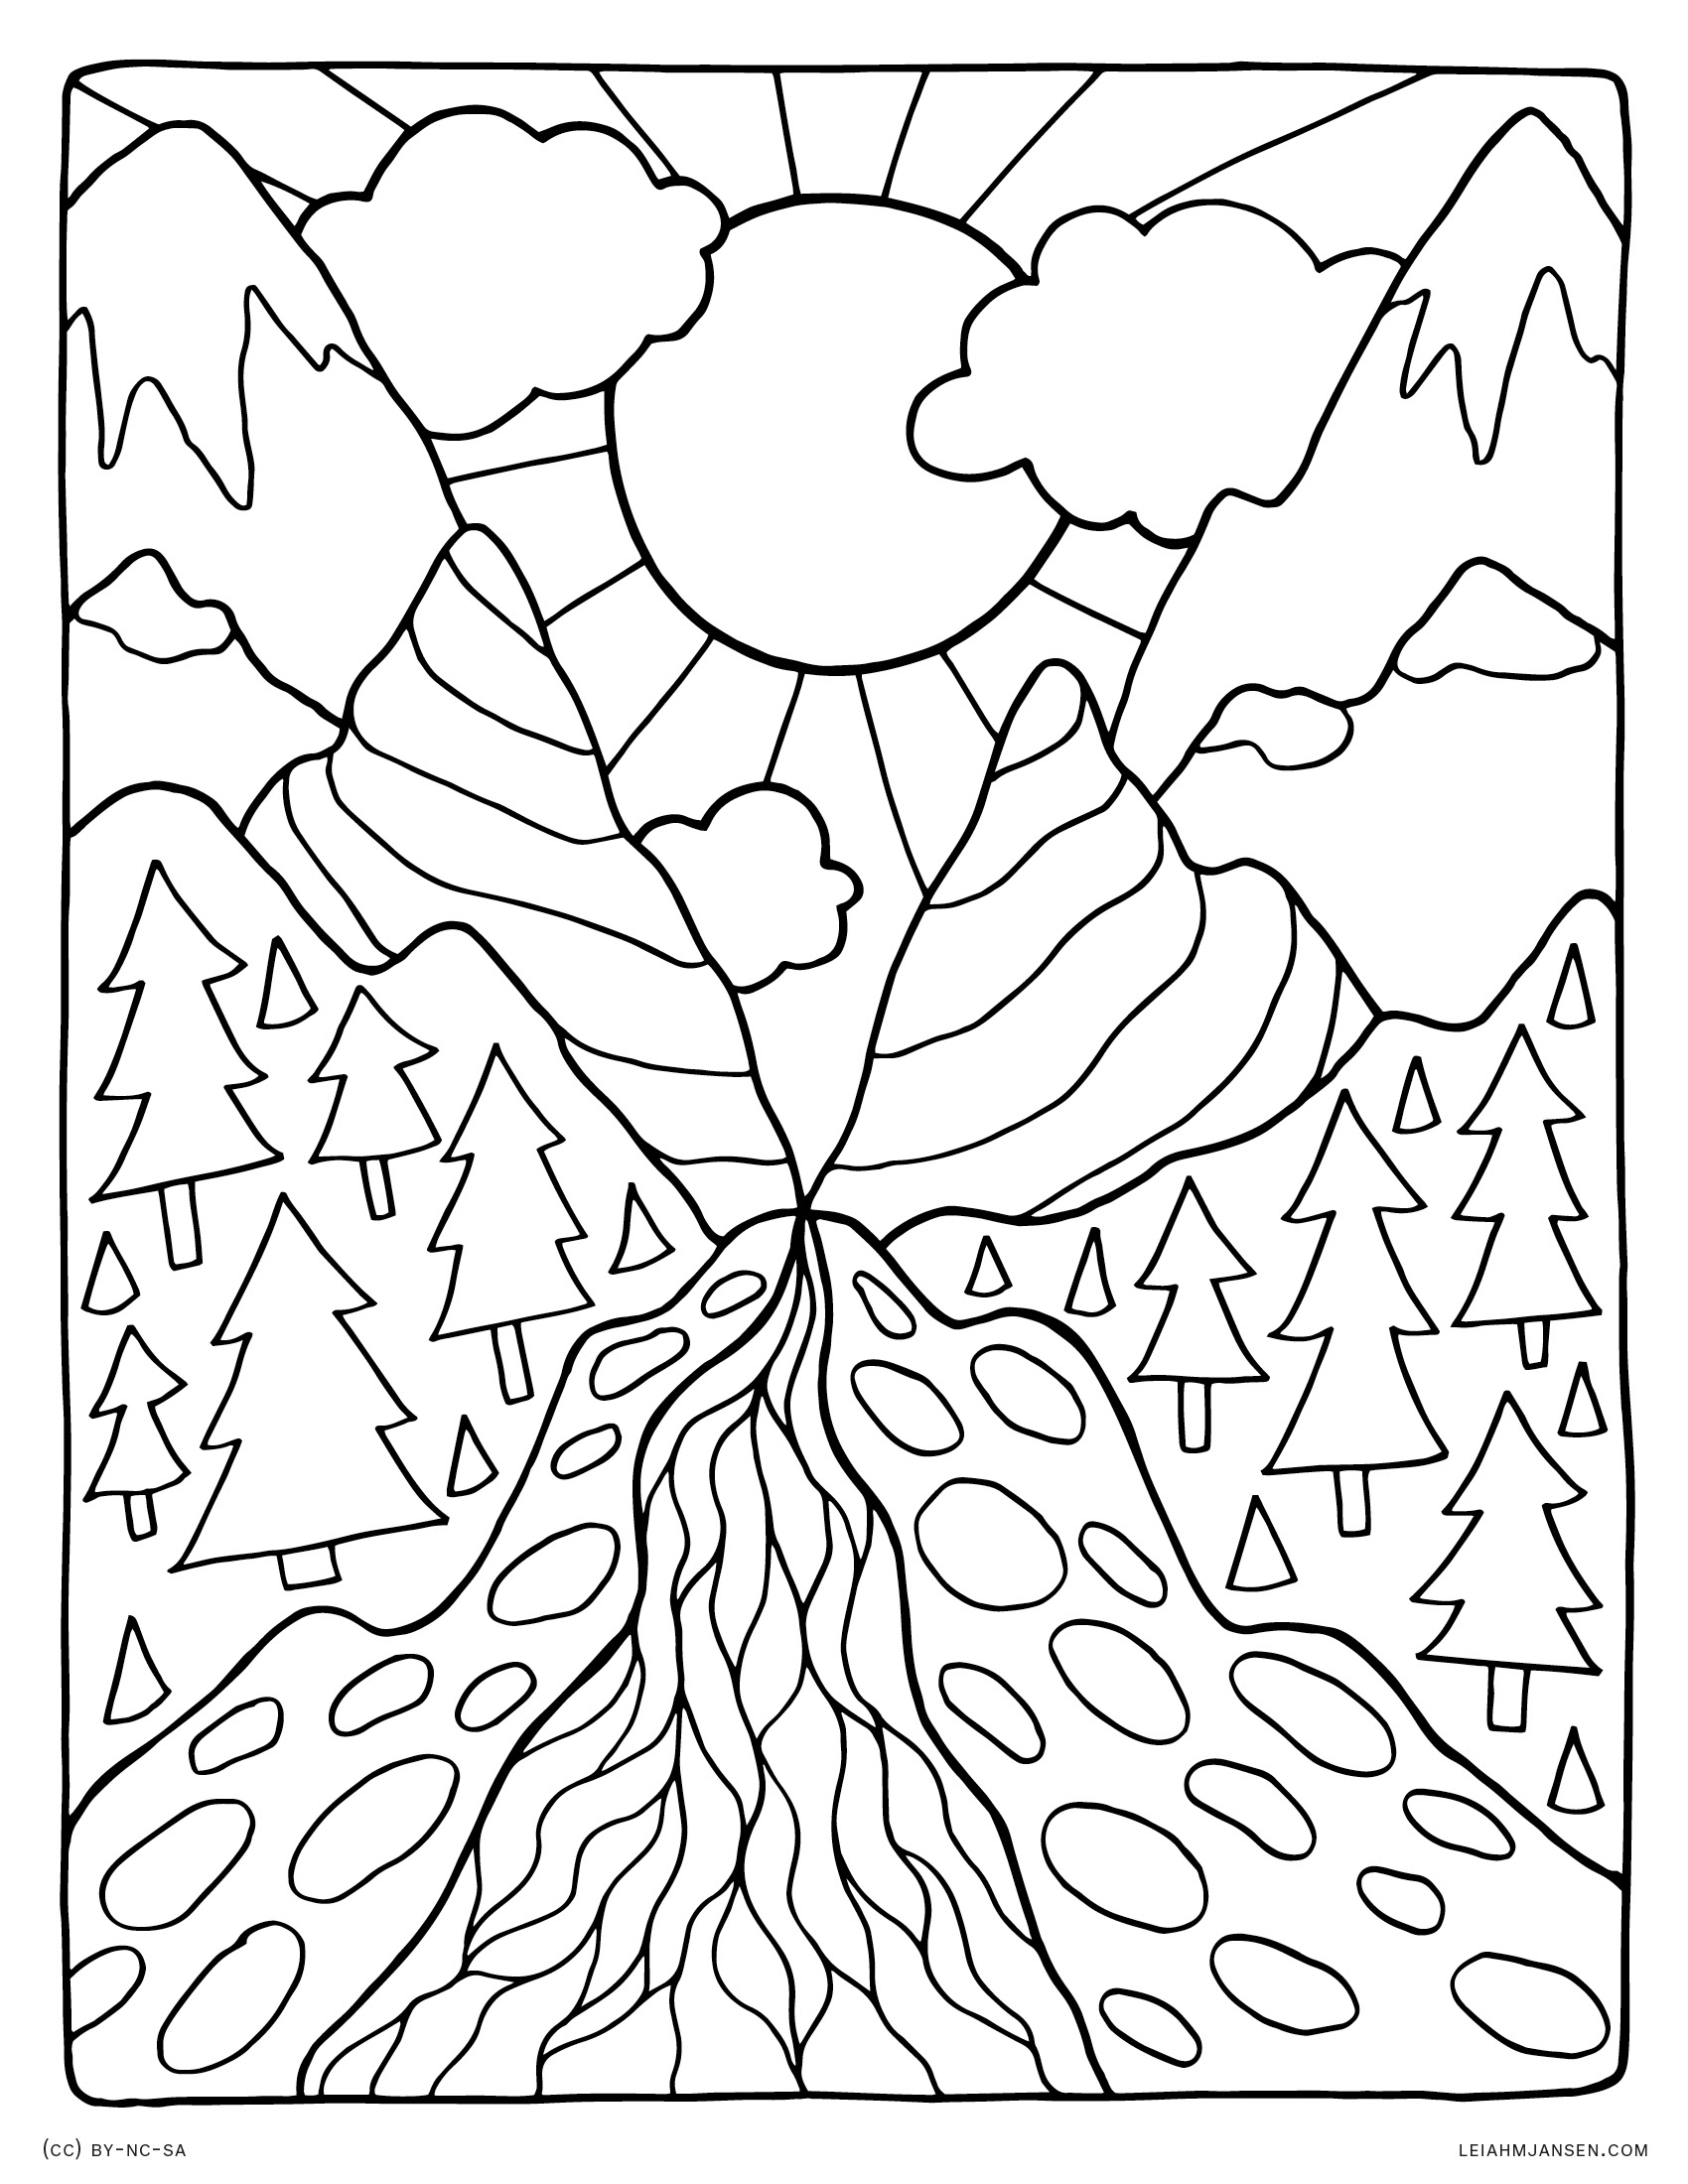 Printable coloring pages landscapes -  Landscape Peaceful Nature Scene Free Printable Coloring Page Download